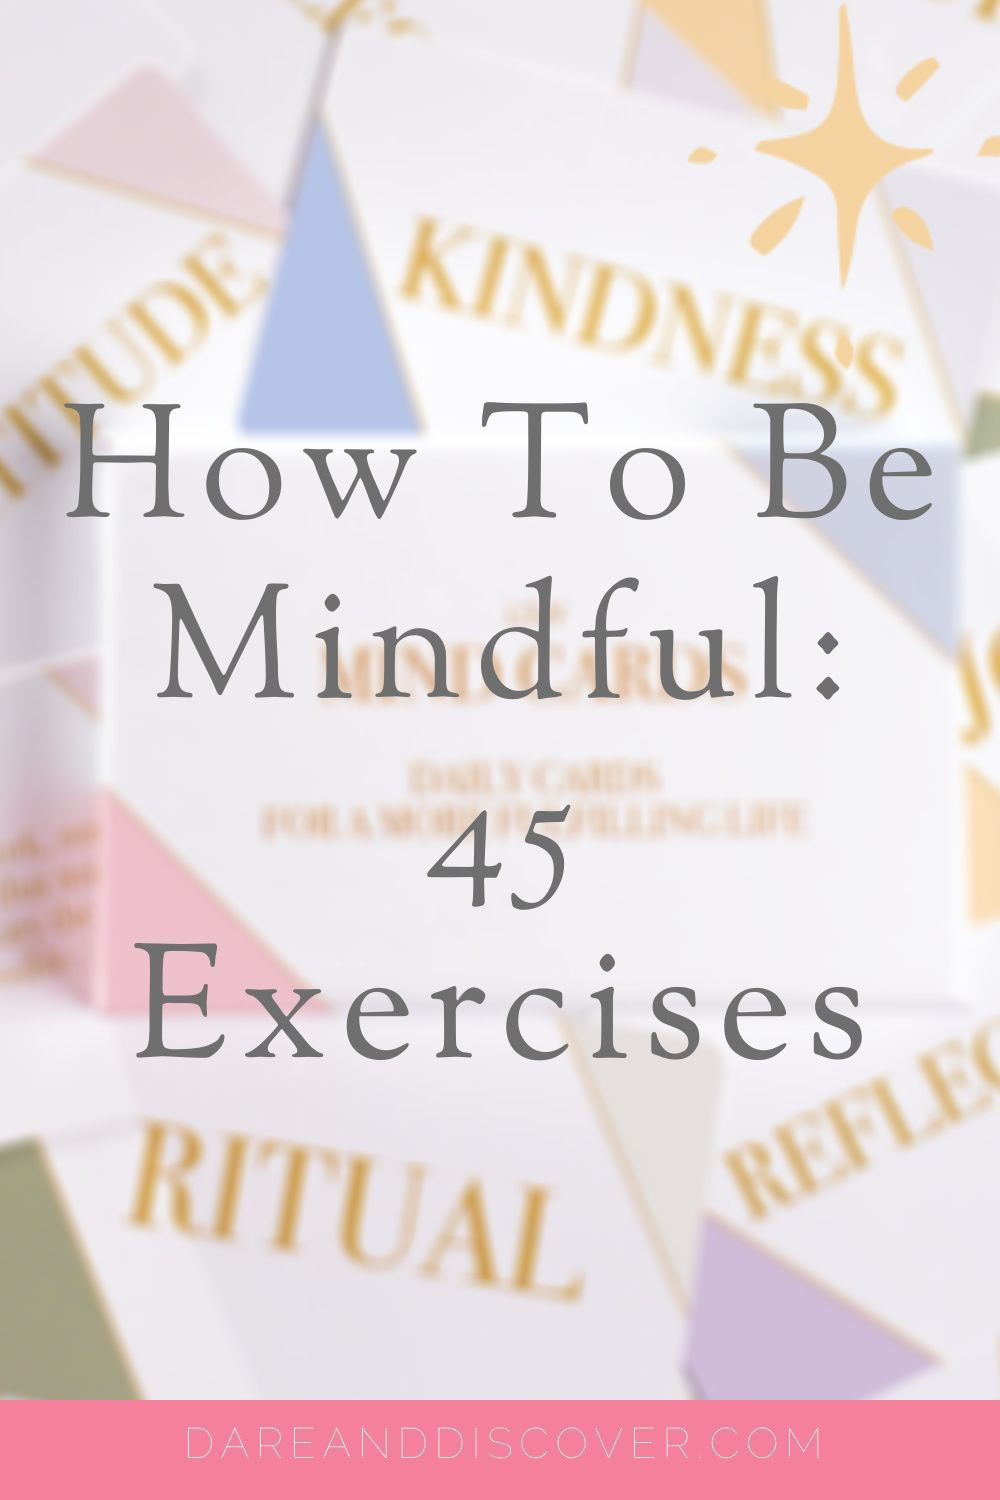 How To Be Mindful 45 Exercises Dare Discover In 2020 Mindfulness Mindfulness Activities Enjoy Writing